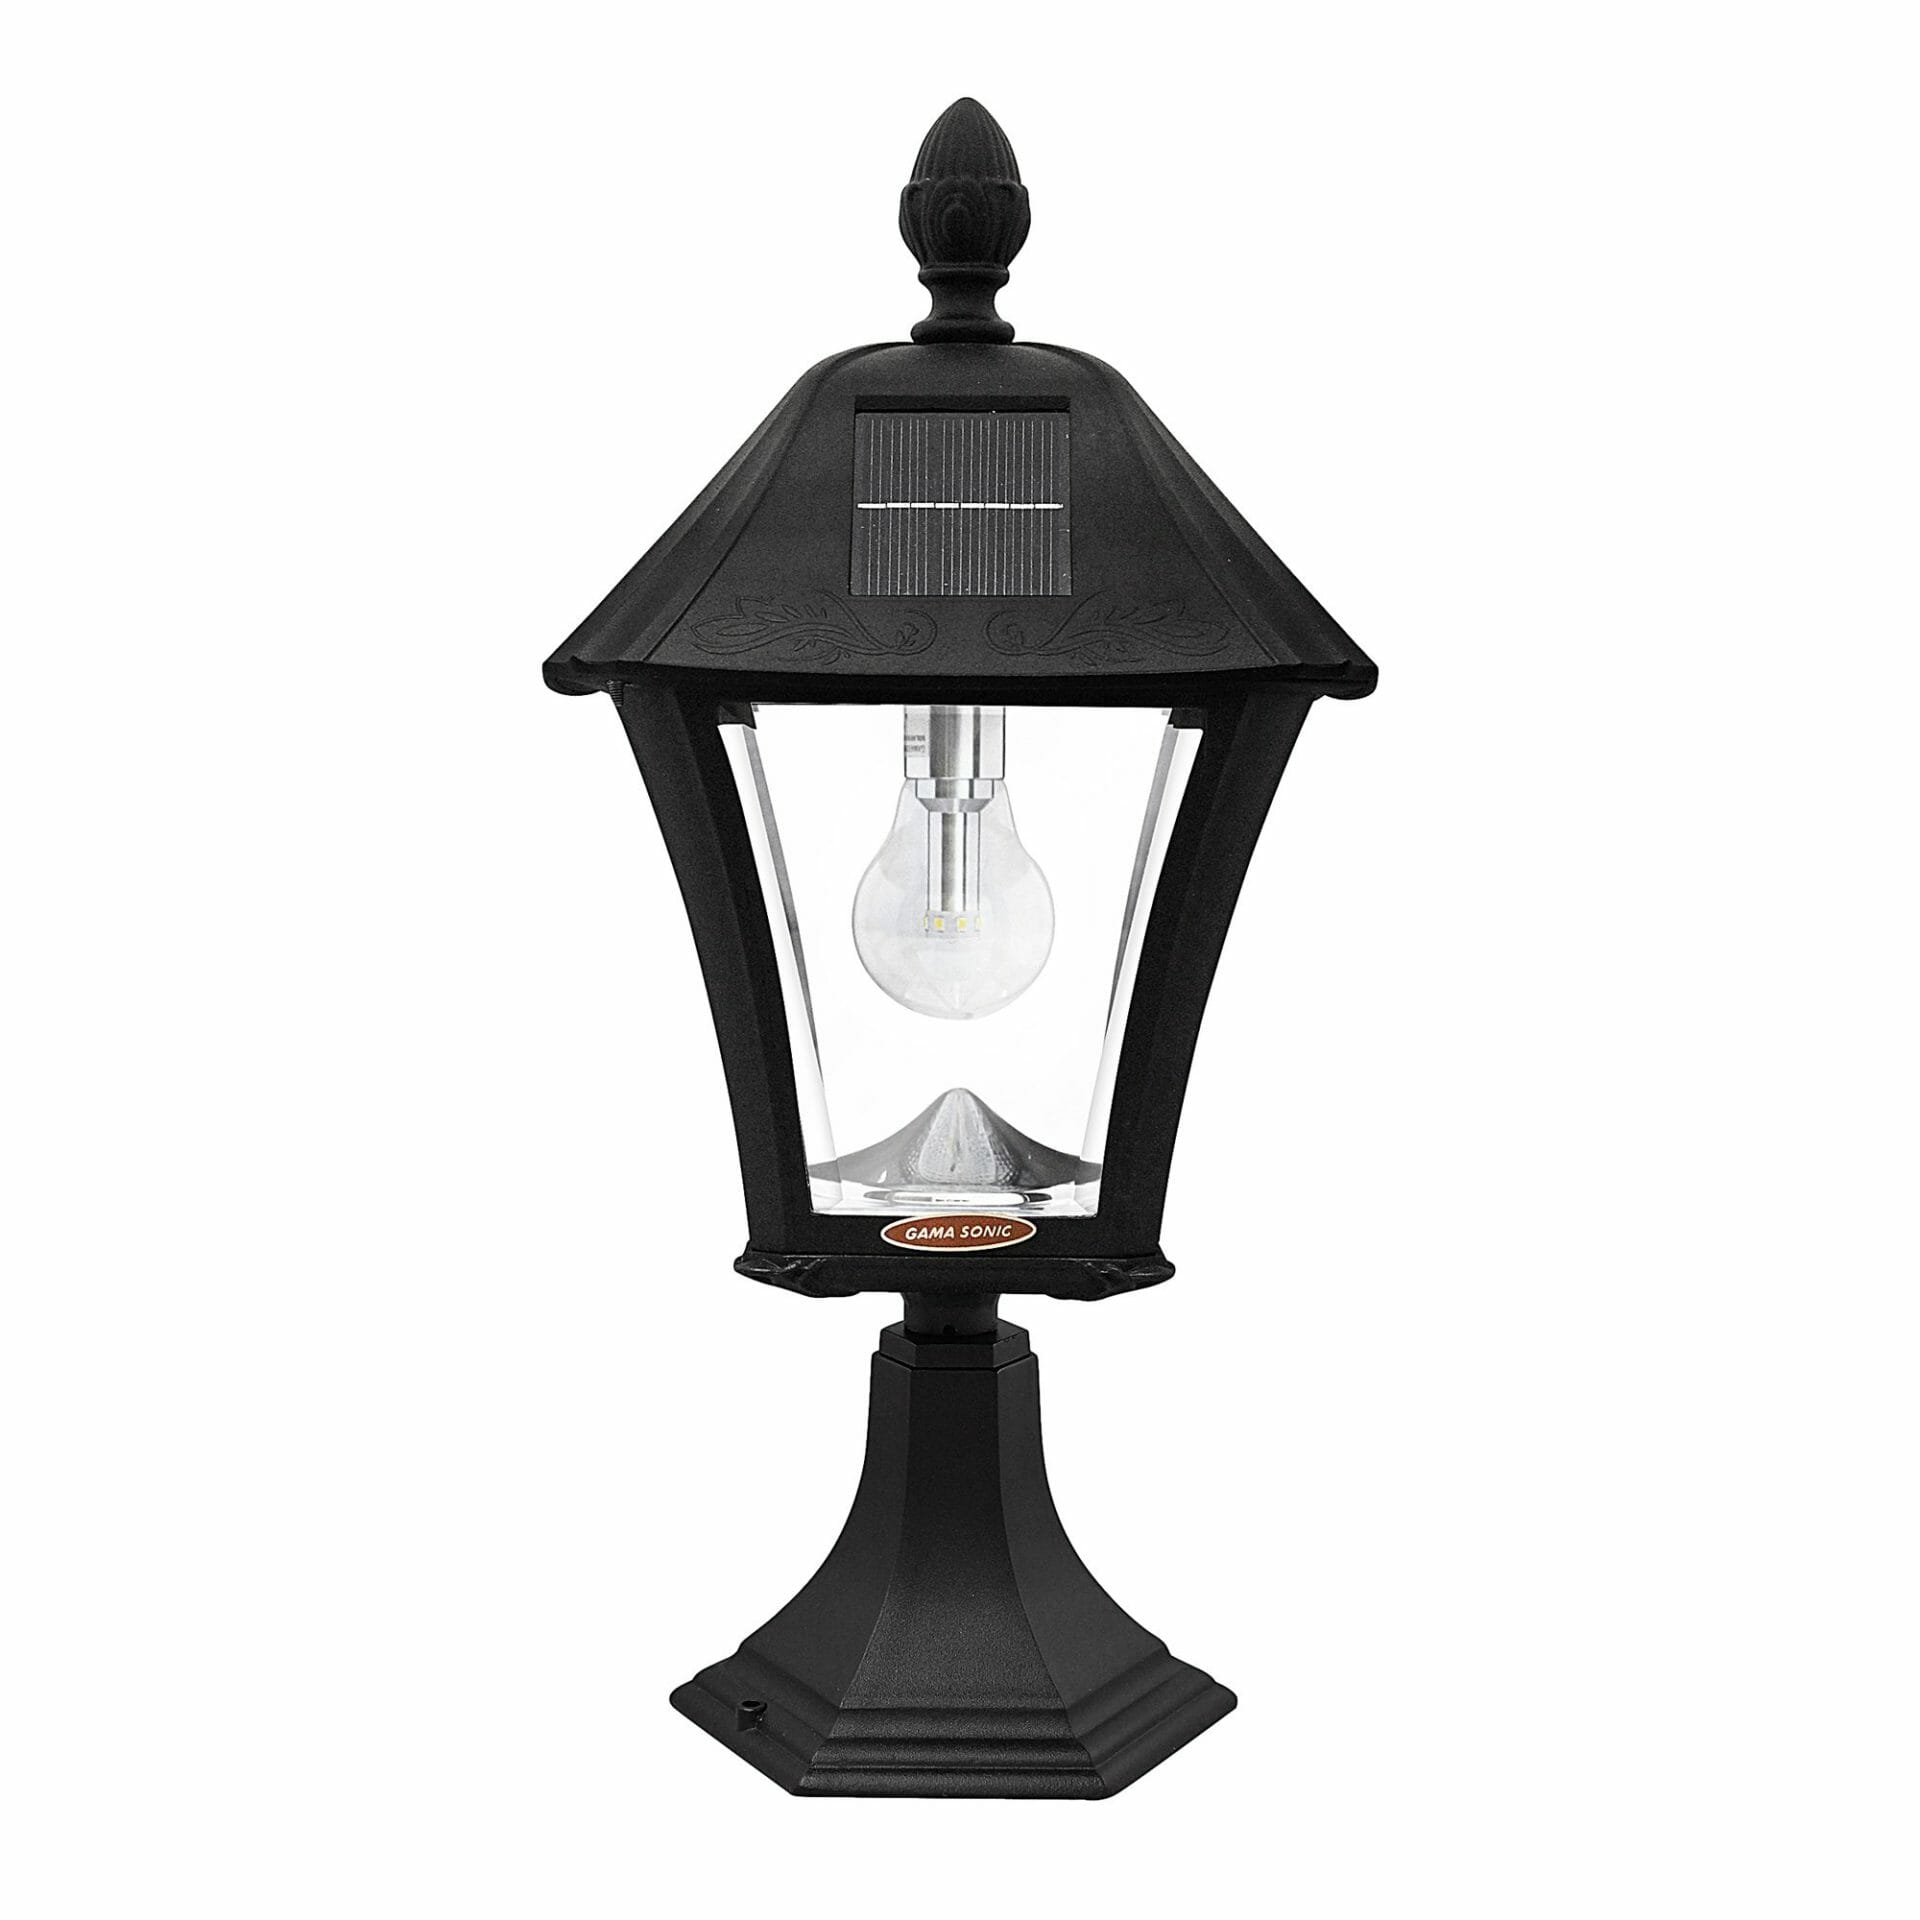 Baytown Bulb Solar Lamp with 3 Mounting Options - Front View